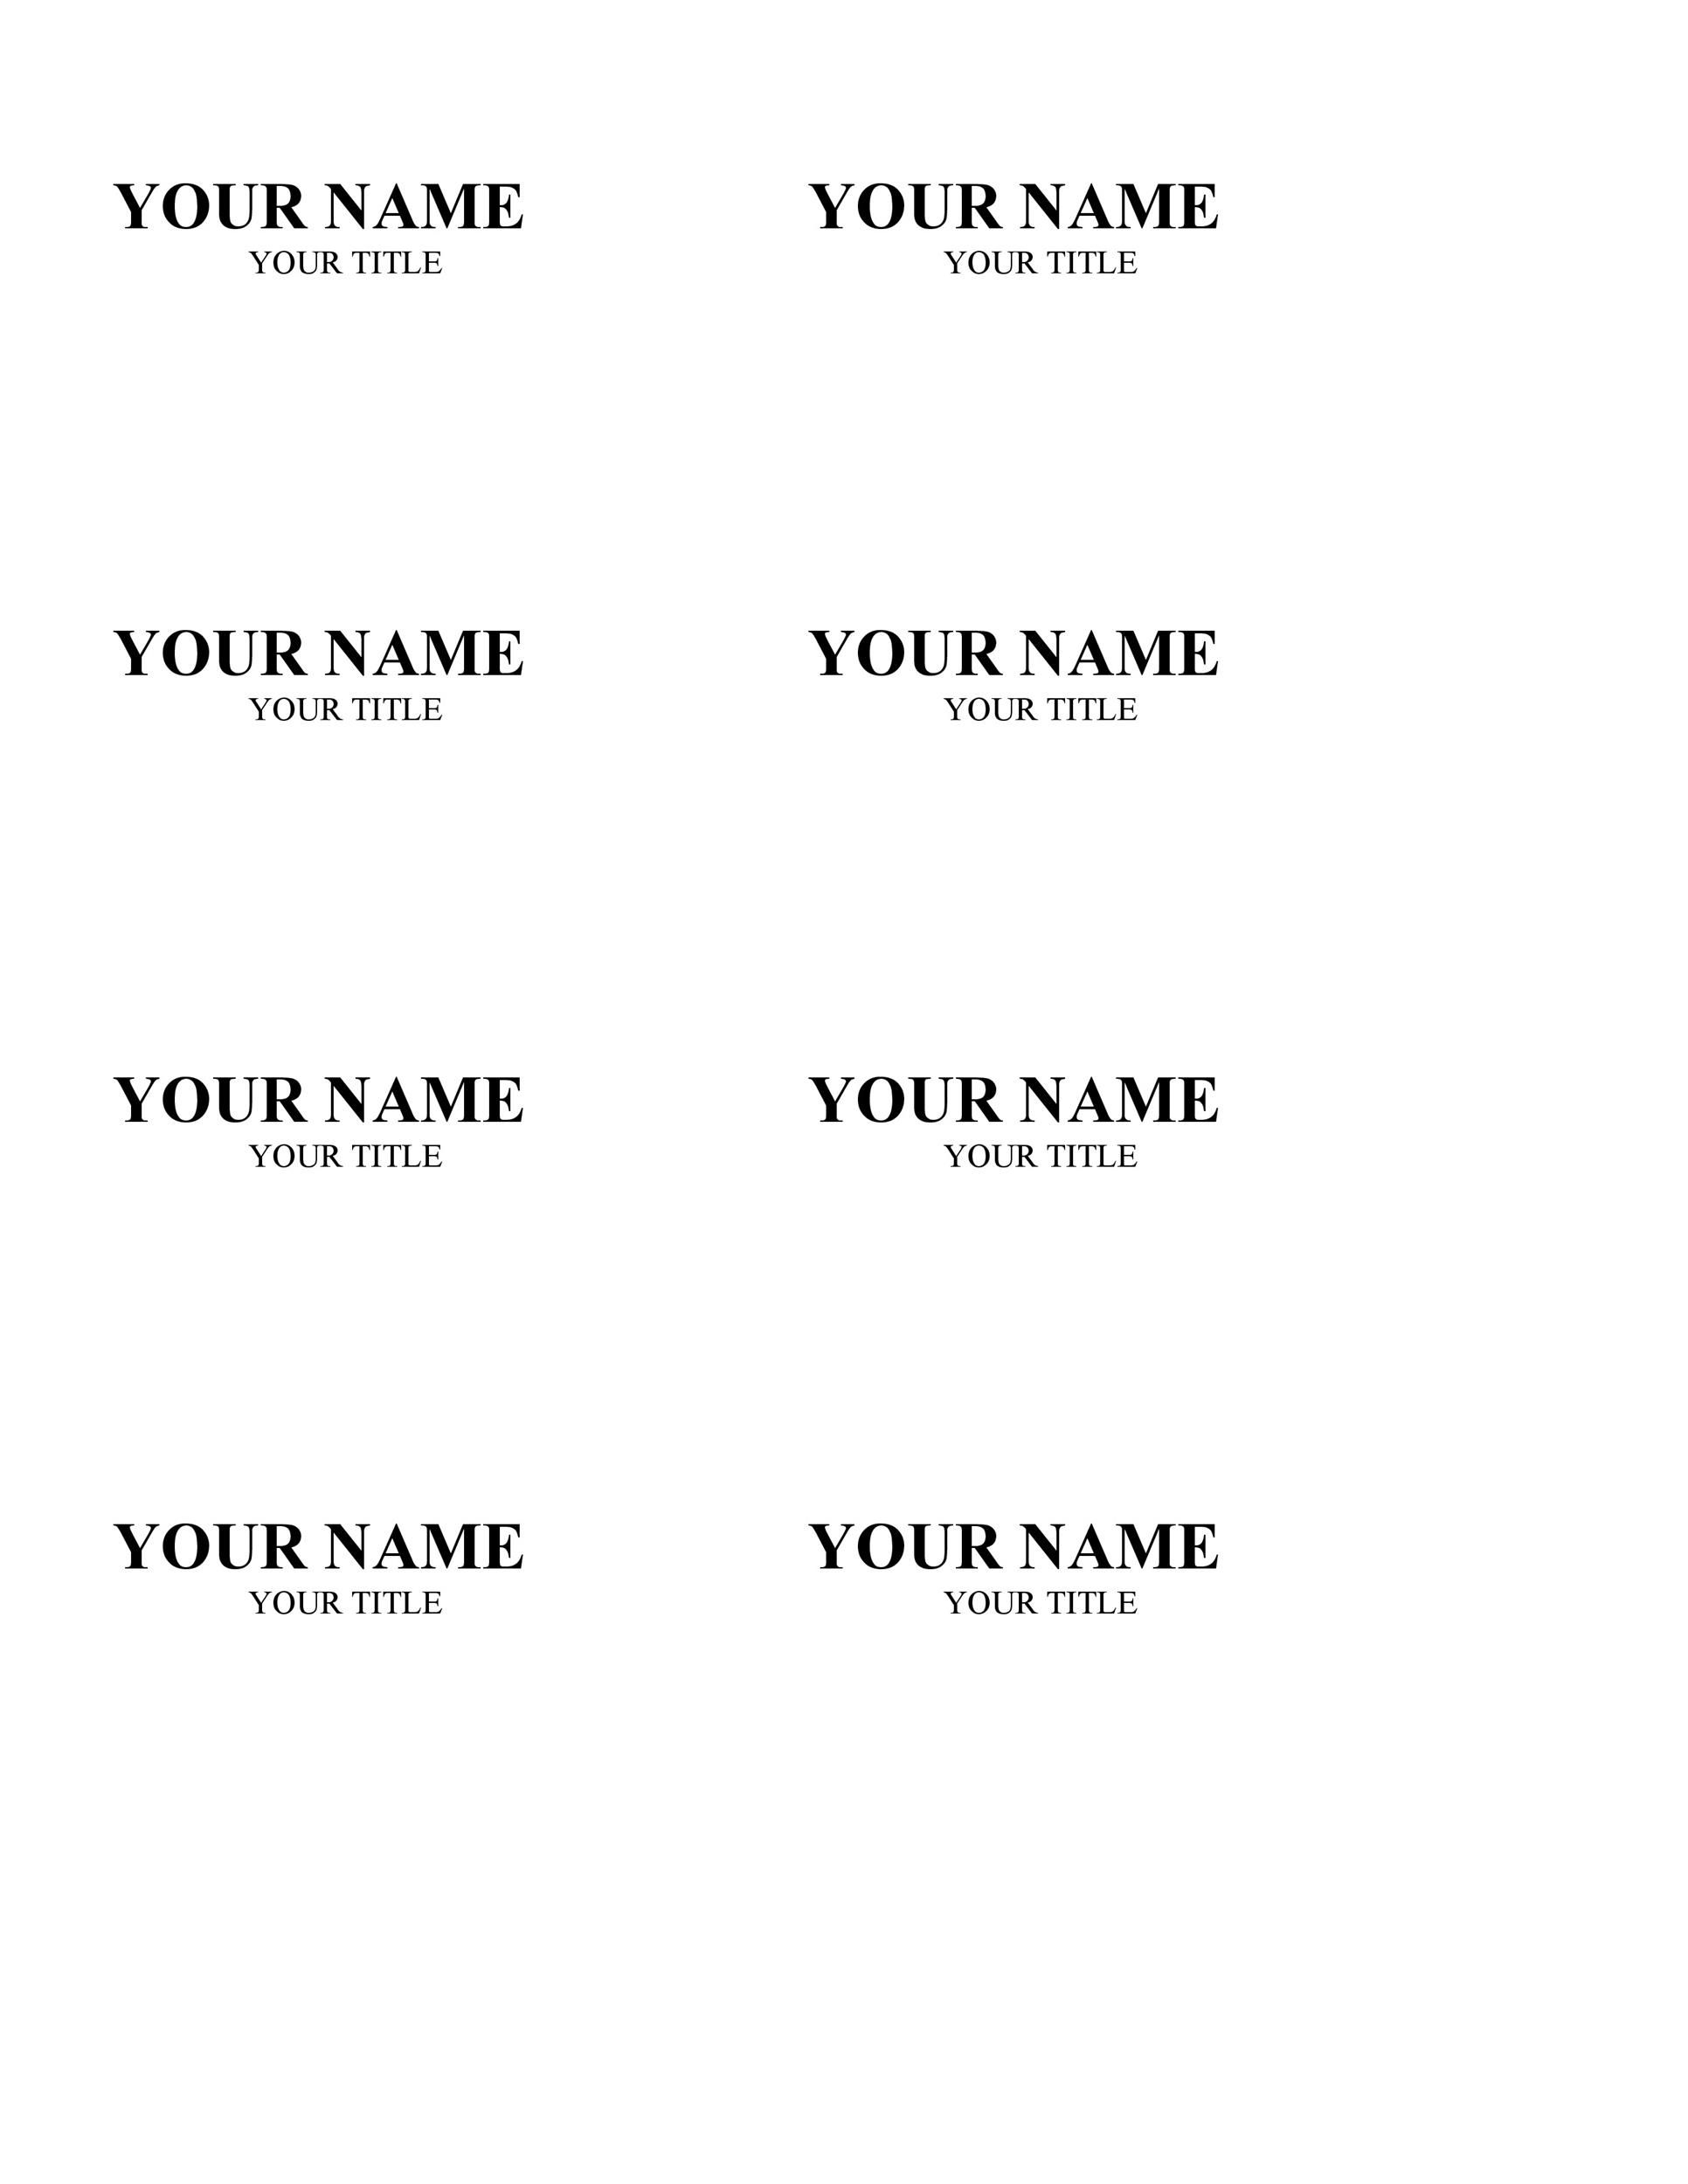 010 Unforgettable Name Badge Template Word Concept  Free Download 2010 Avery 5392Full